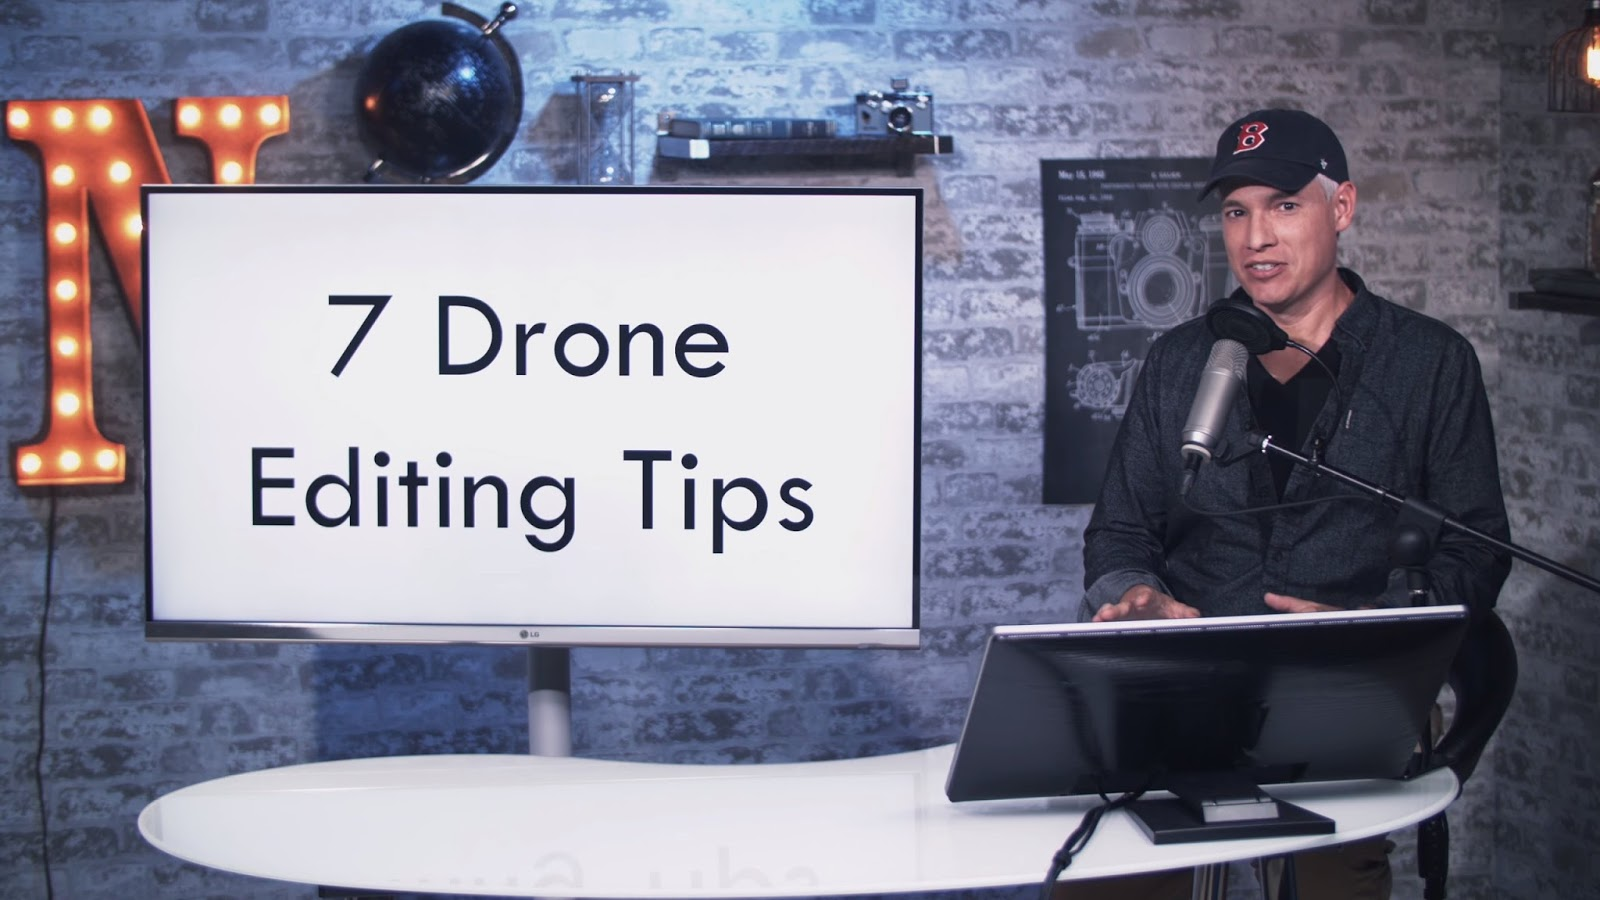 7 Drone Video Editing Tips in 3 MINUTES